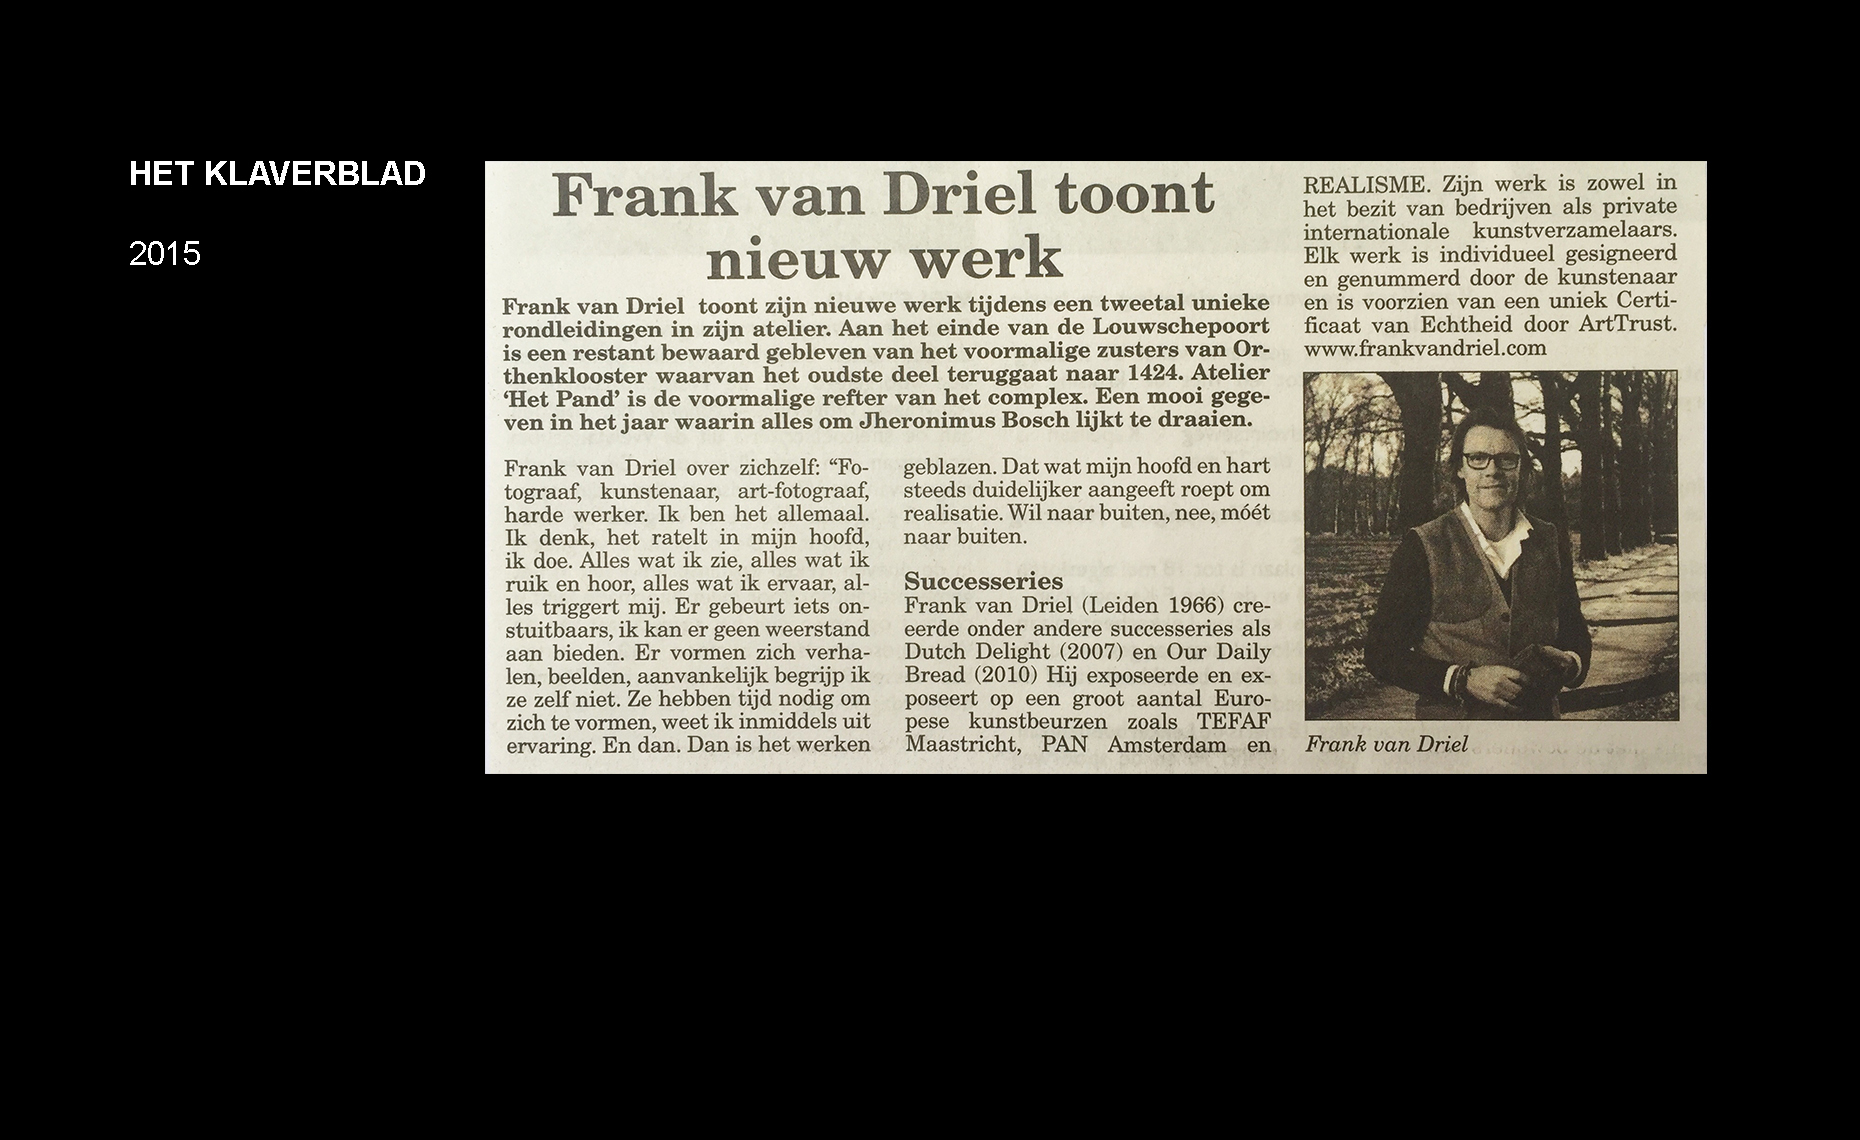 Frank van Driel Publicatie Klaverblad